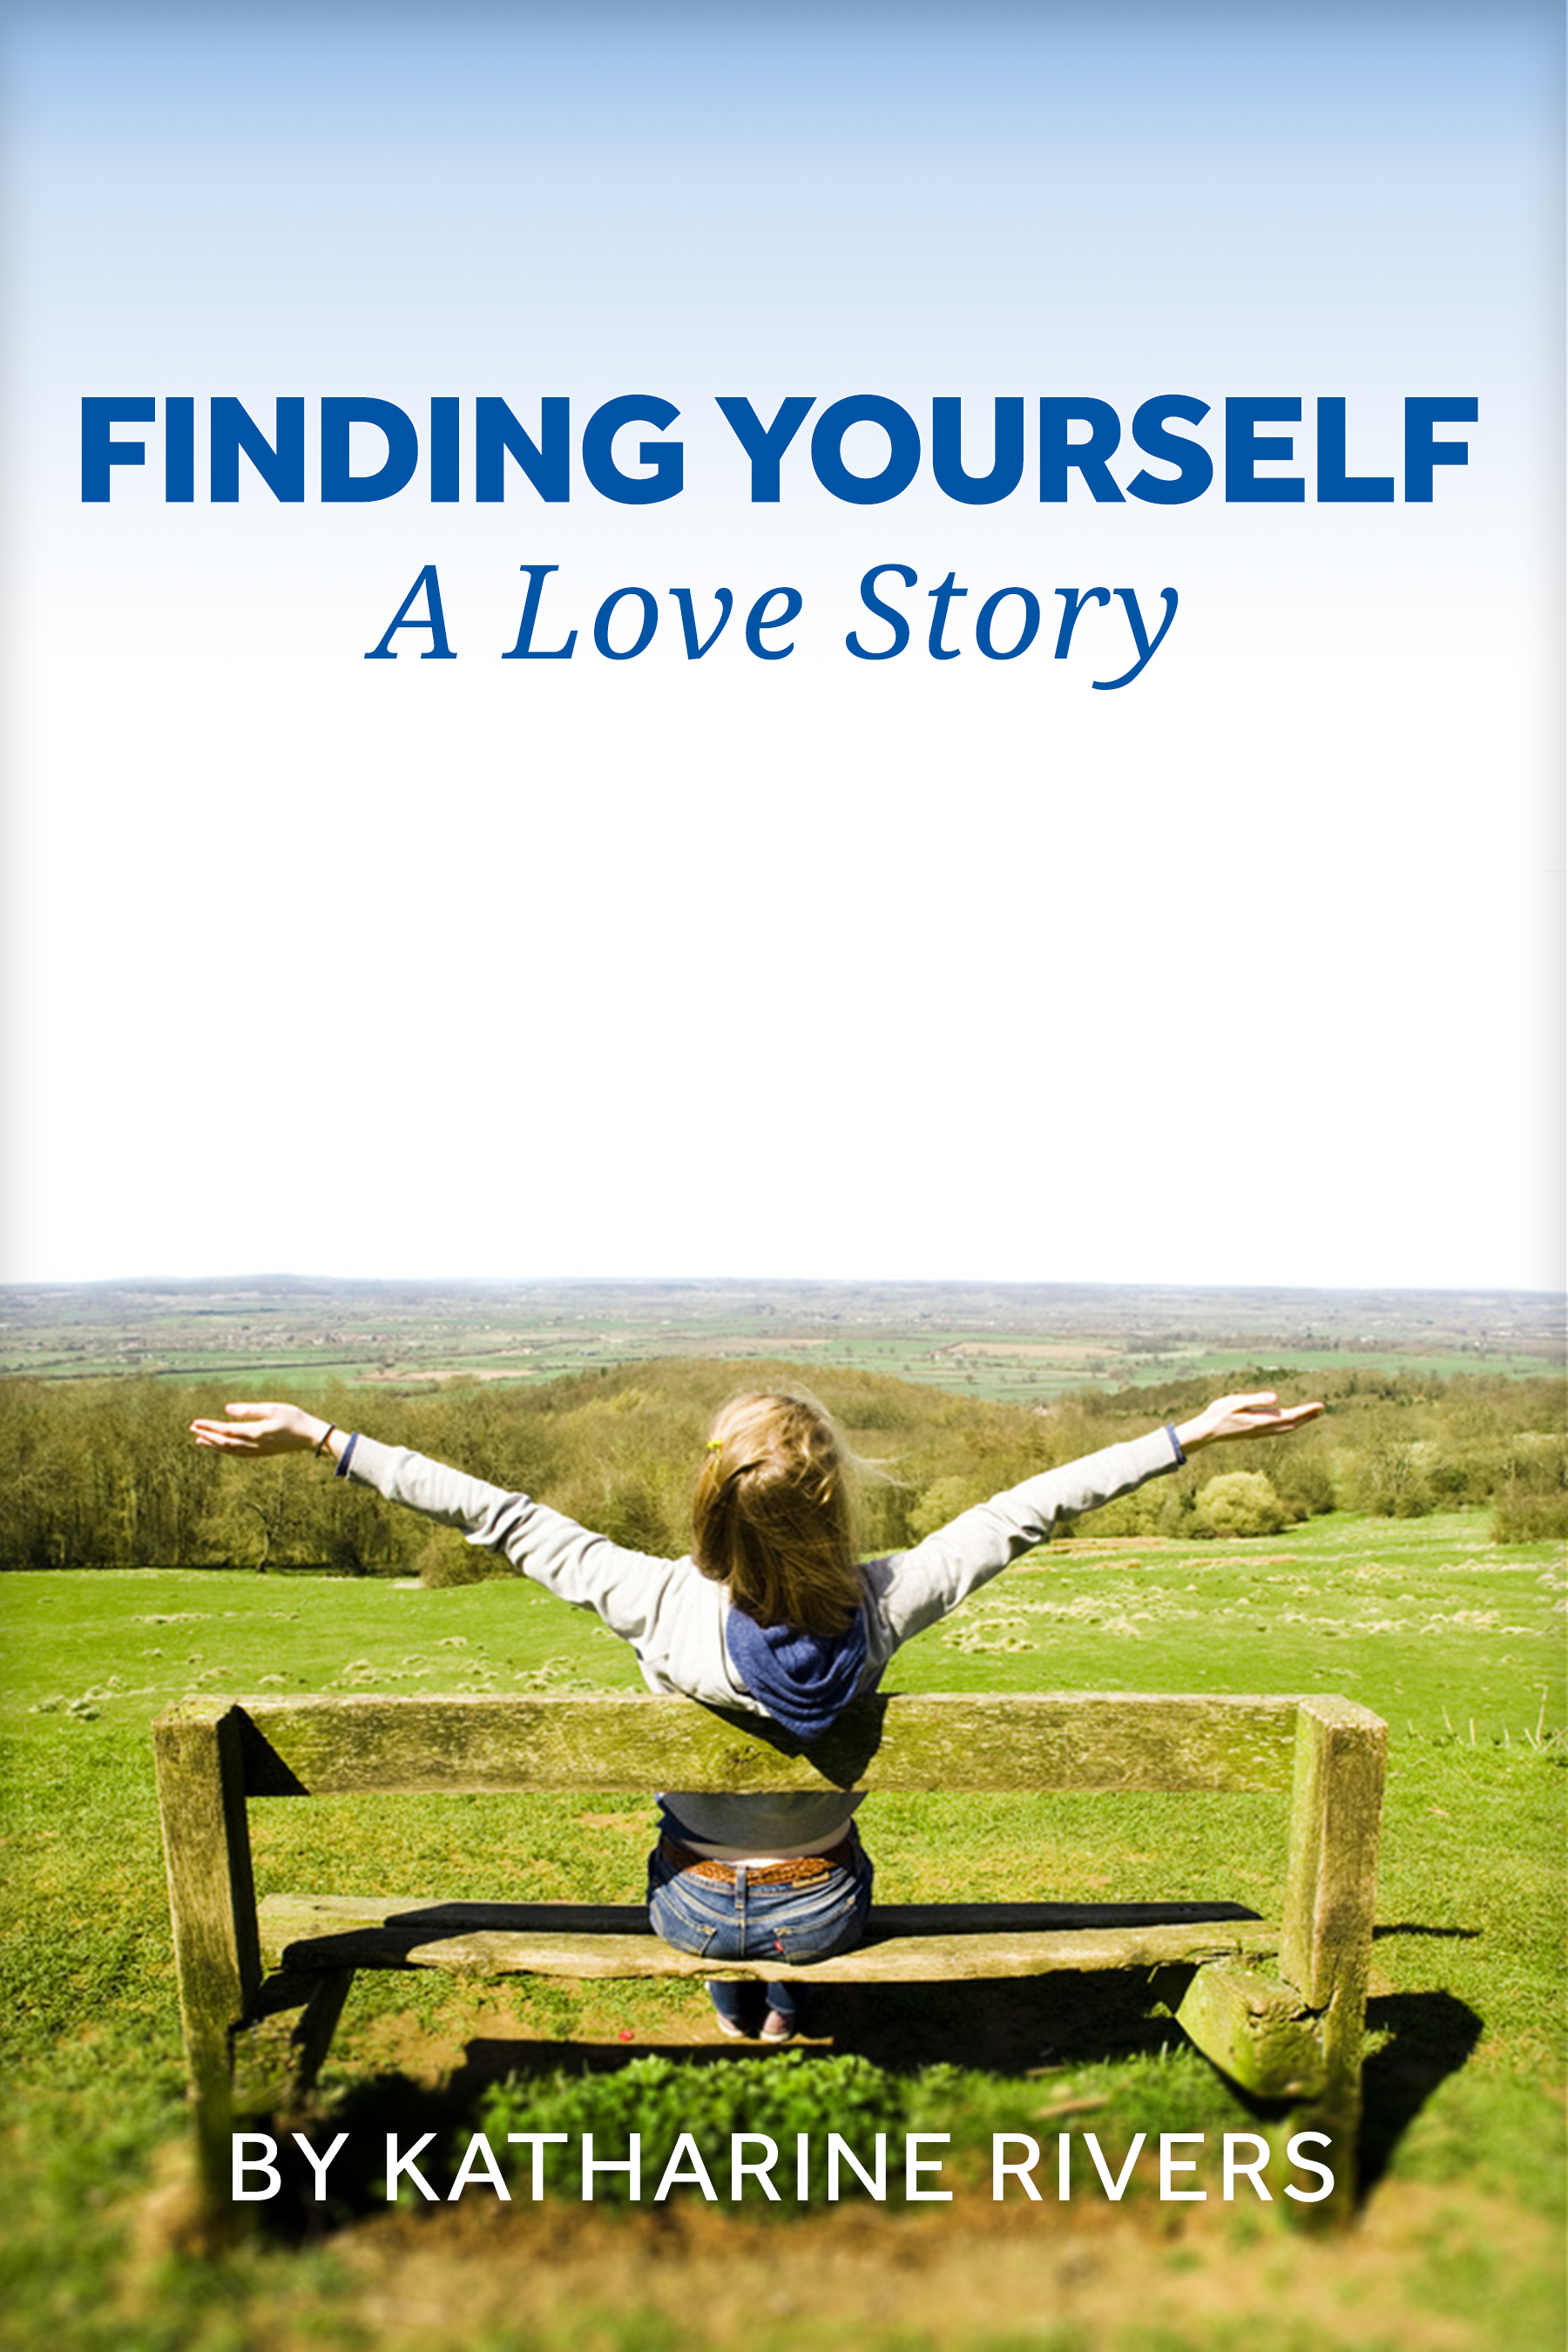 Finding Yourself – A Love Story